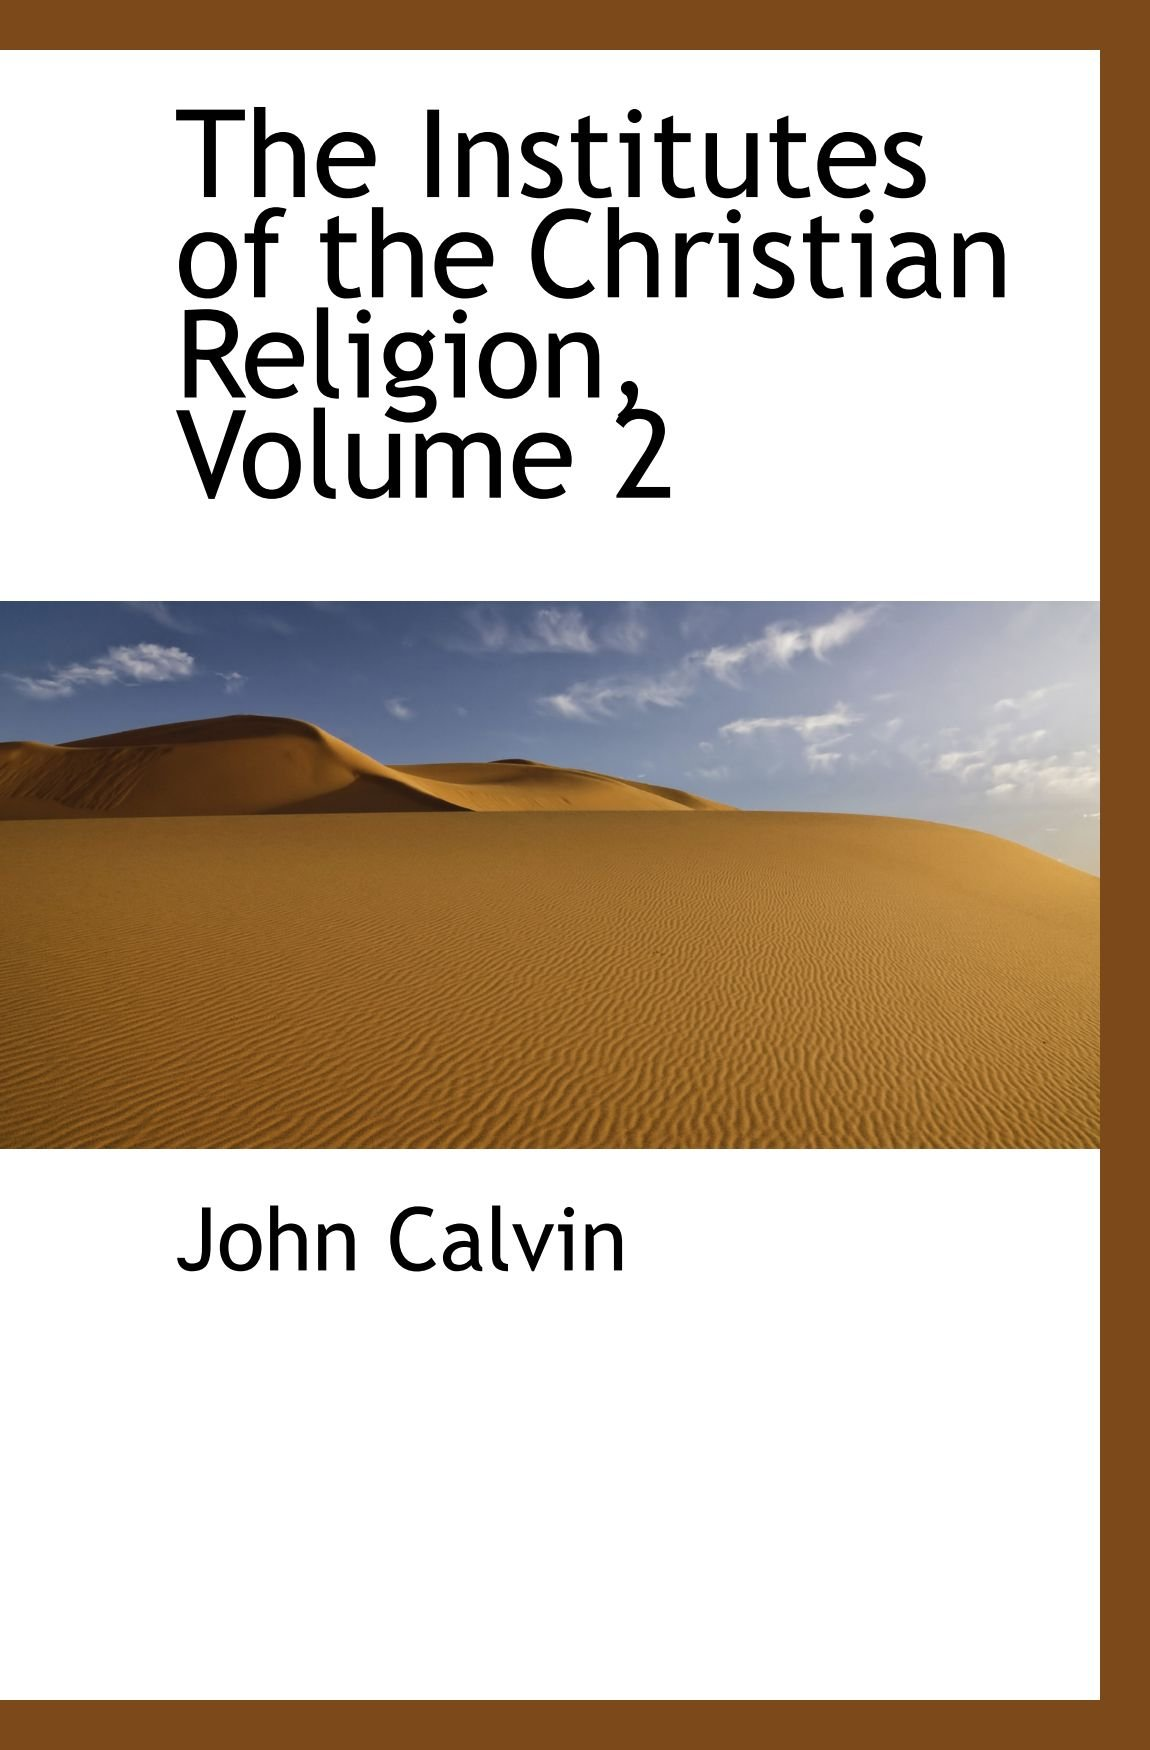 Download The Institutes of the Christian Religion, Volume 2 PDF